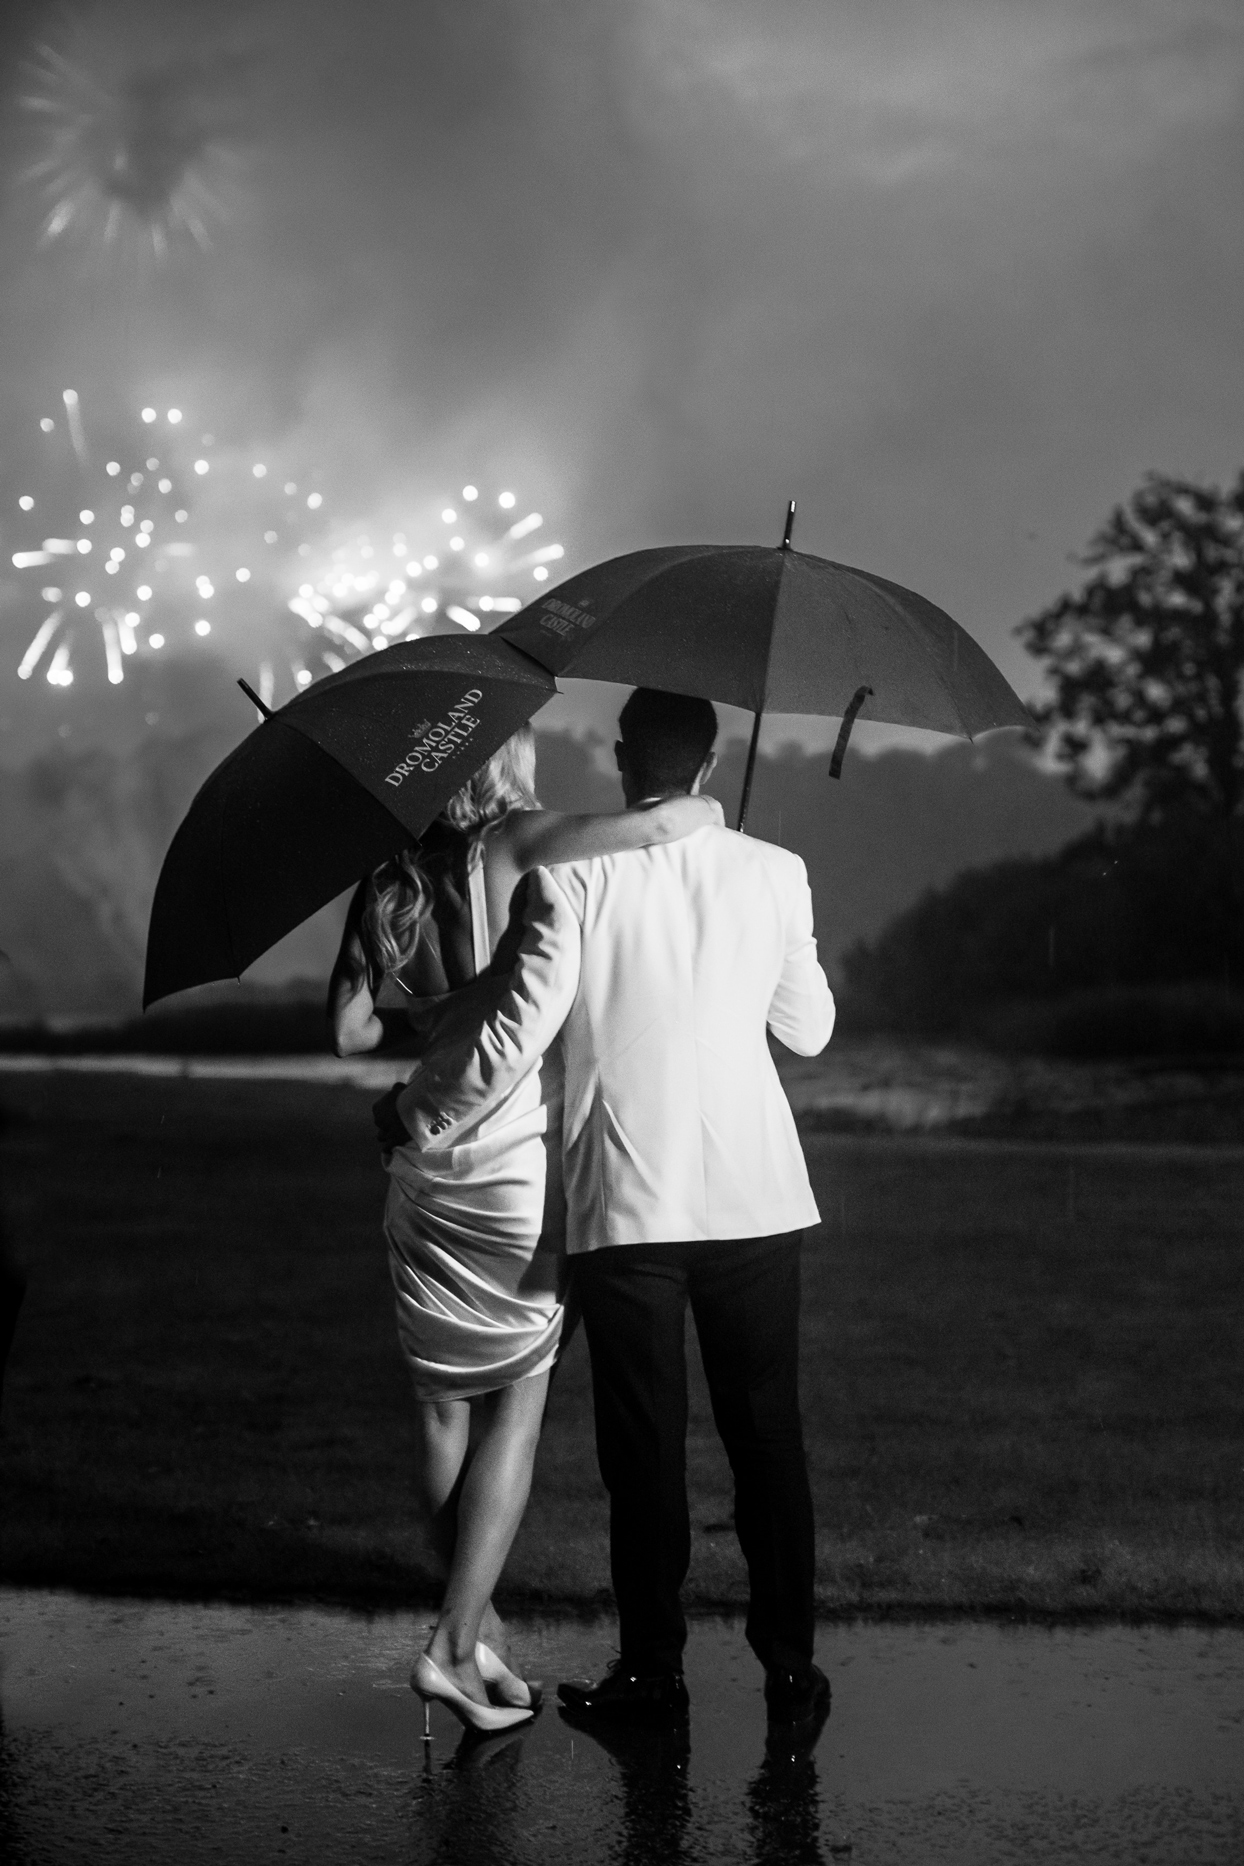 bride and groom holding umbrellas watching fireworks